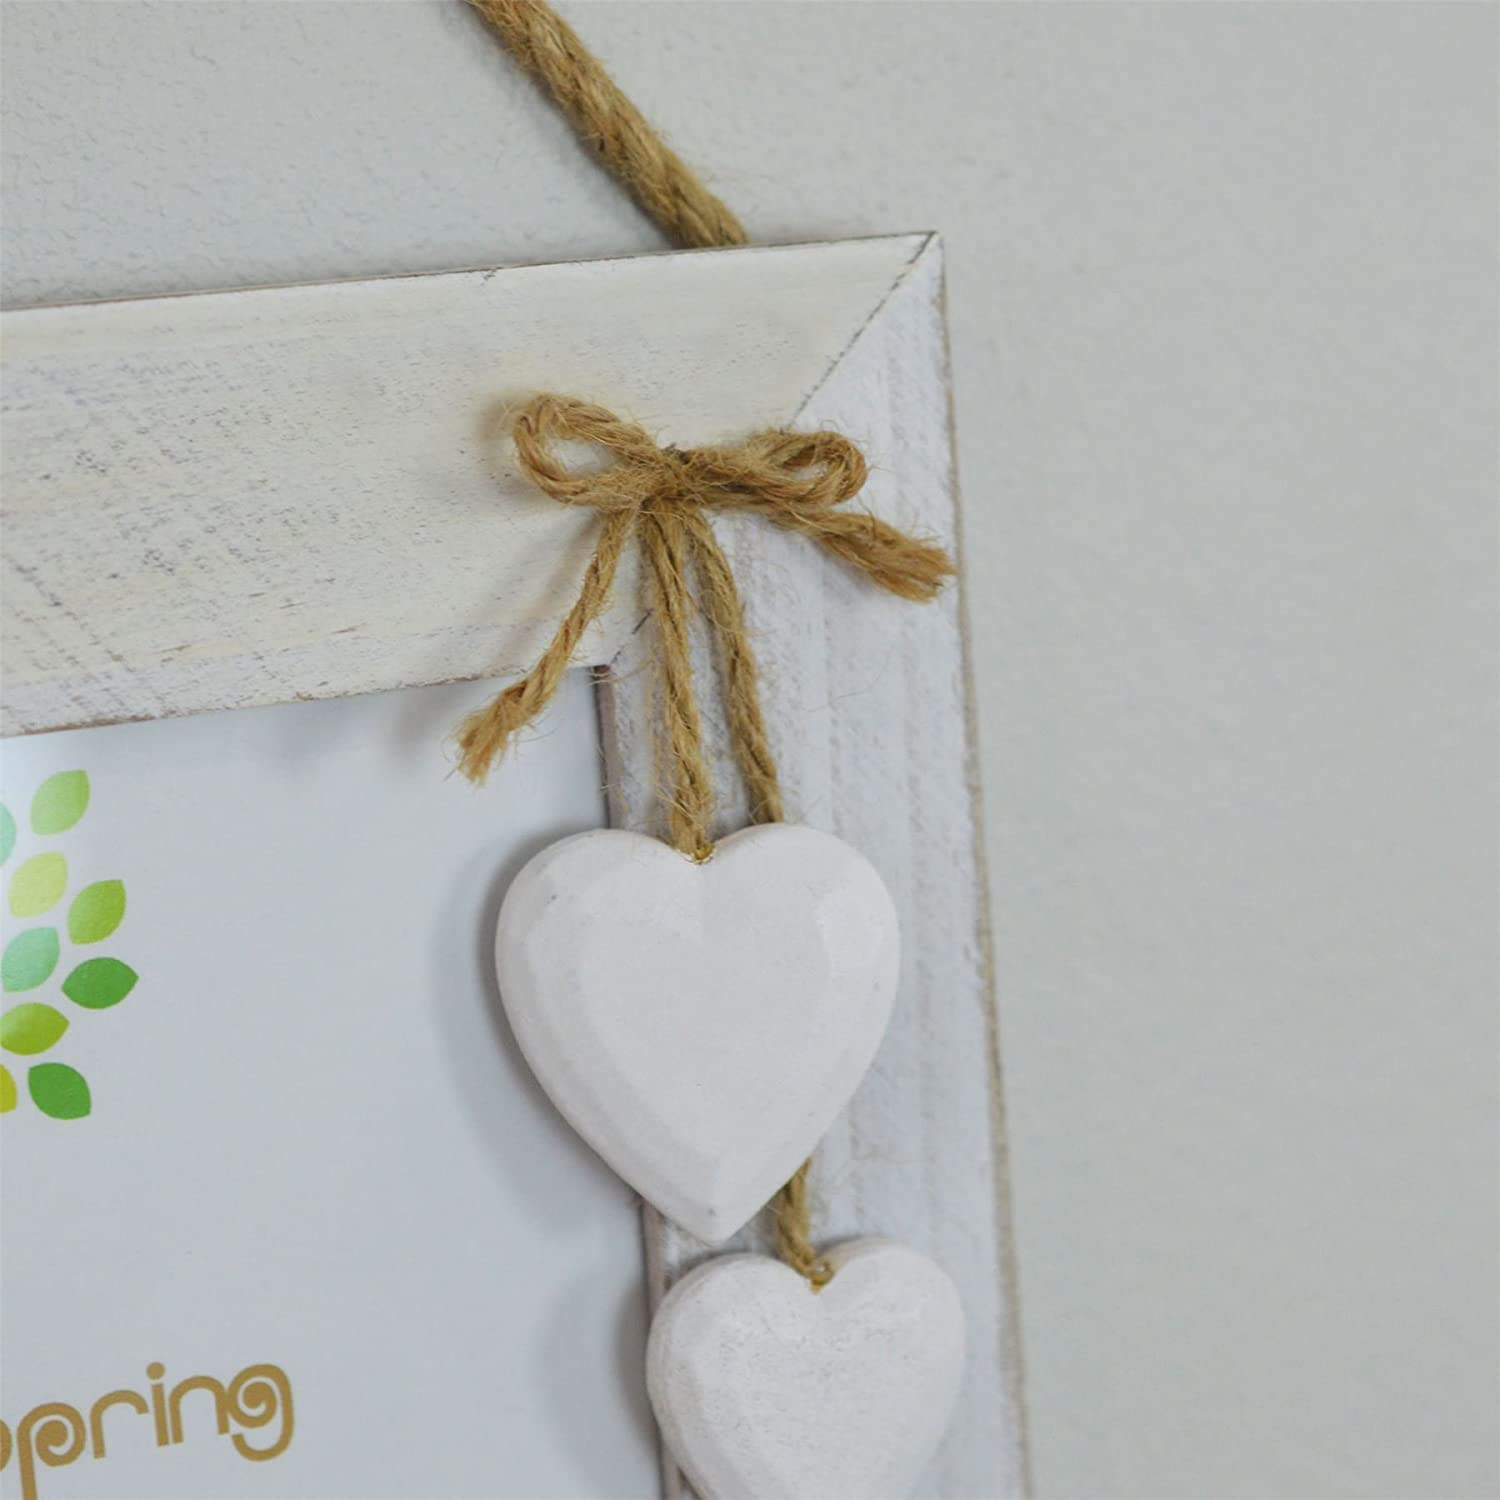 6 x 4 Nicola Spring Triple White Wooden 3 Photo Hanging Picture Frame With White Hearts